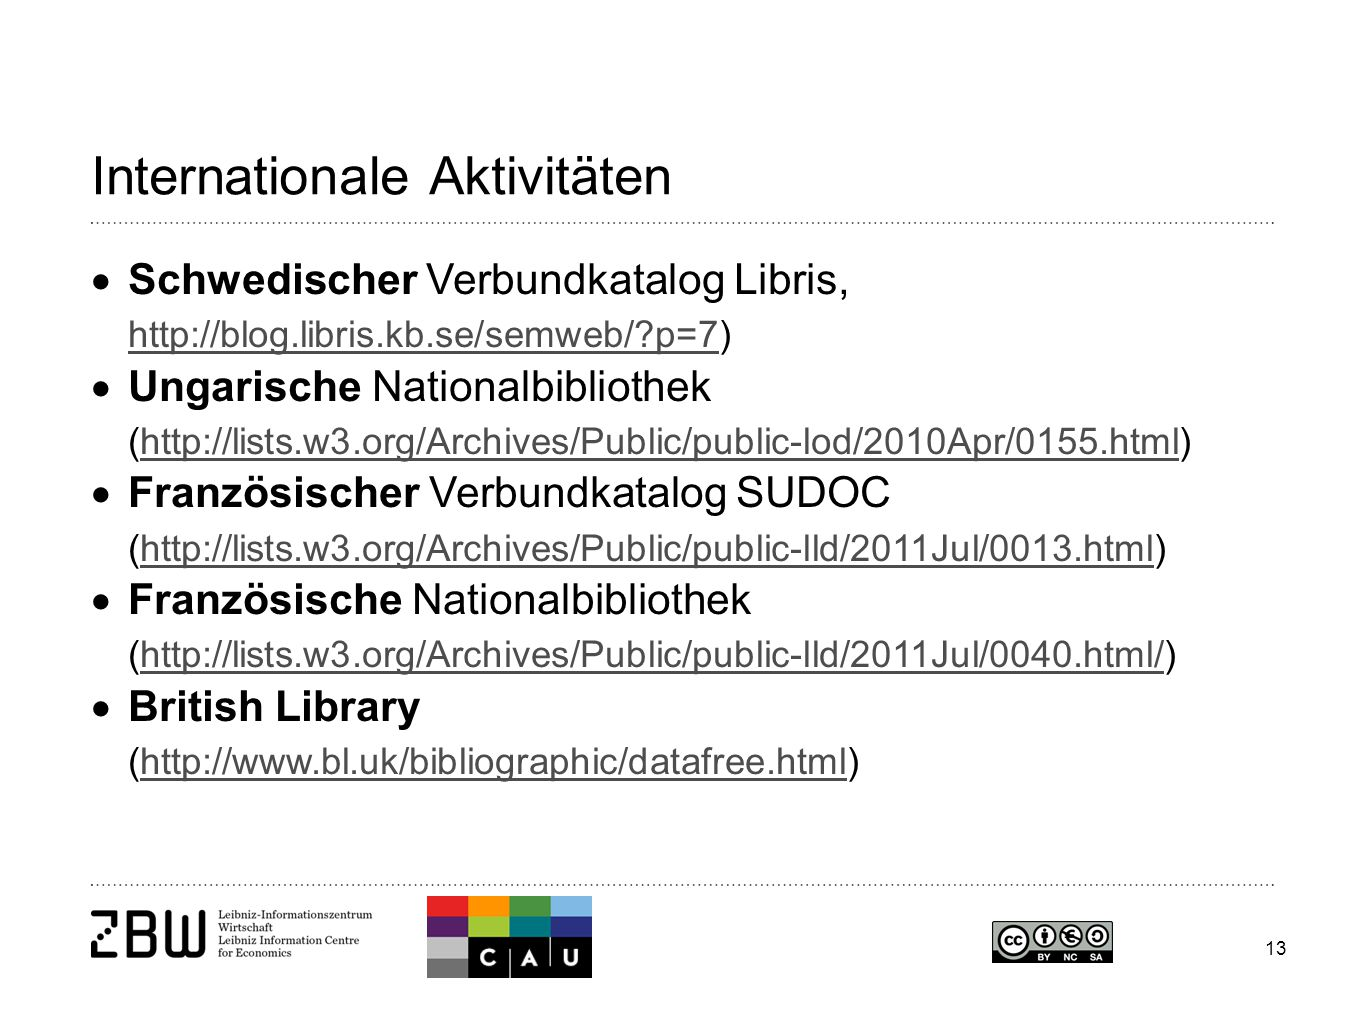 13 Internationale Aktivitäten  Schwedischer Verbundkatalog Libris, http://blog.libris.kb.se/semweb/ p=7) http://blog.libris.kb.se/semweb/ p=7  Ungarische Nationalbibliothek (http://lists.w3.org/Archives/Public/public-lod/2010Apr/0155.html)http://lists.w3.org/Archives/Public/public-lod/2010Apr/0155.html  Französischer Verbundkatalog SUDOC (http://lists.w3.org/Archives/Public/public-lld/2011Jul/0013.html)http://lists.w3.org/Archives/Public/public-lld/2011Jul/0013.html  Französische Nationalbibliothek (http://lists.w3.org/Archives/Public/public-lld/2011Jul/0040.html/)http://lists.w3.org/Archives/Public/public-lld/2011Jul/0040.html/  British Library (http://www.bl.uk/bibliographic/datafree.html)http://www.bl.uk/bibliographic/datafree.html